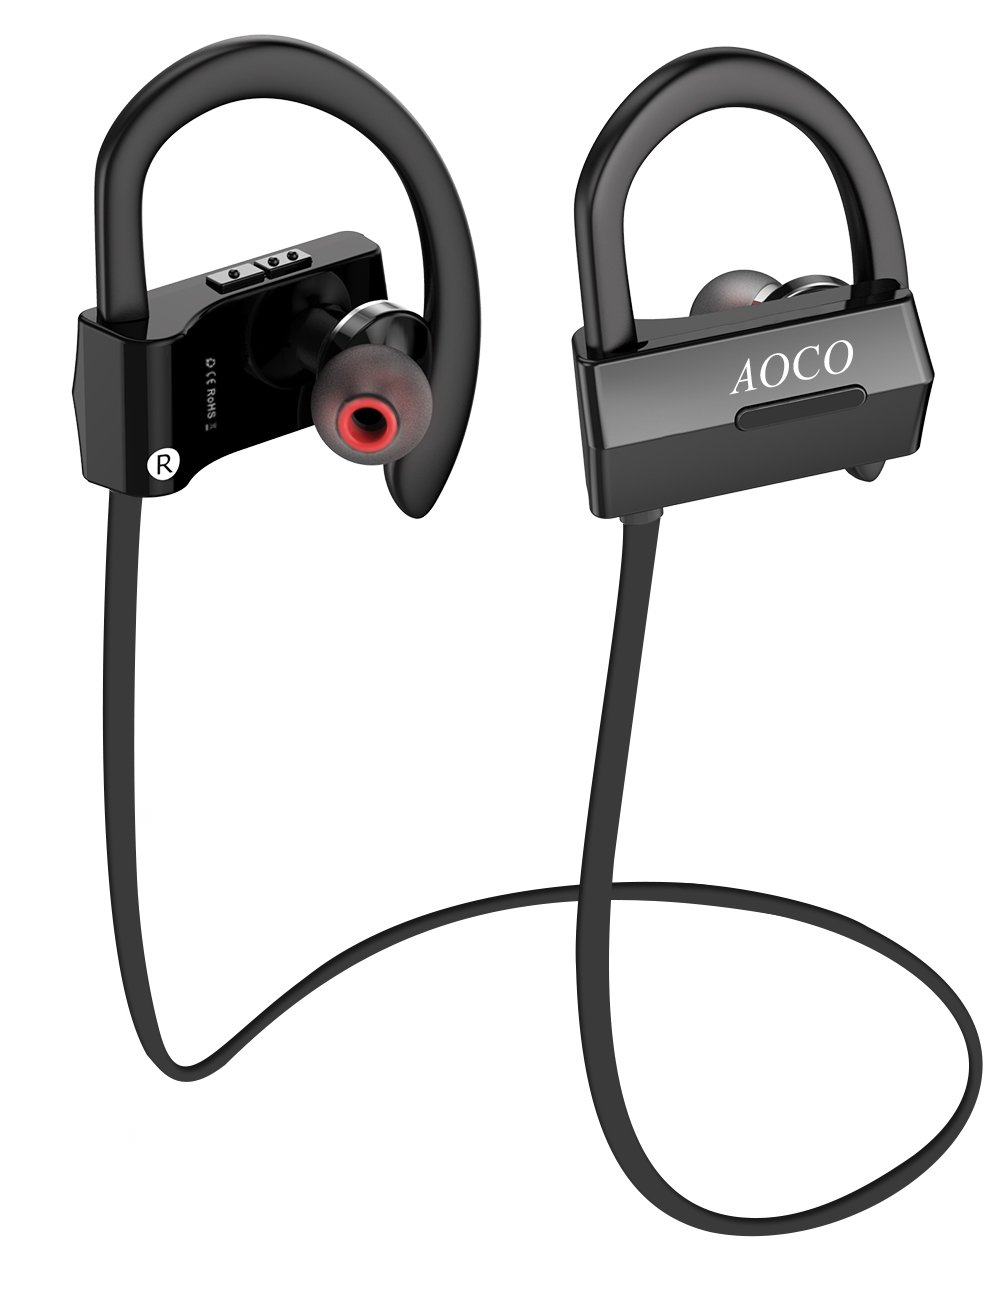 72bbbe91ea7 Amazon.com: AOCO Bluetooth Headphones Wireless in-Ear Sports Stereo Noise  Isolating Sports Sweatproof Headset with Mic and Soft Security Hooks: Home  Audio & ...